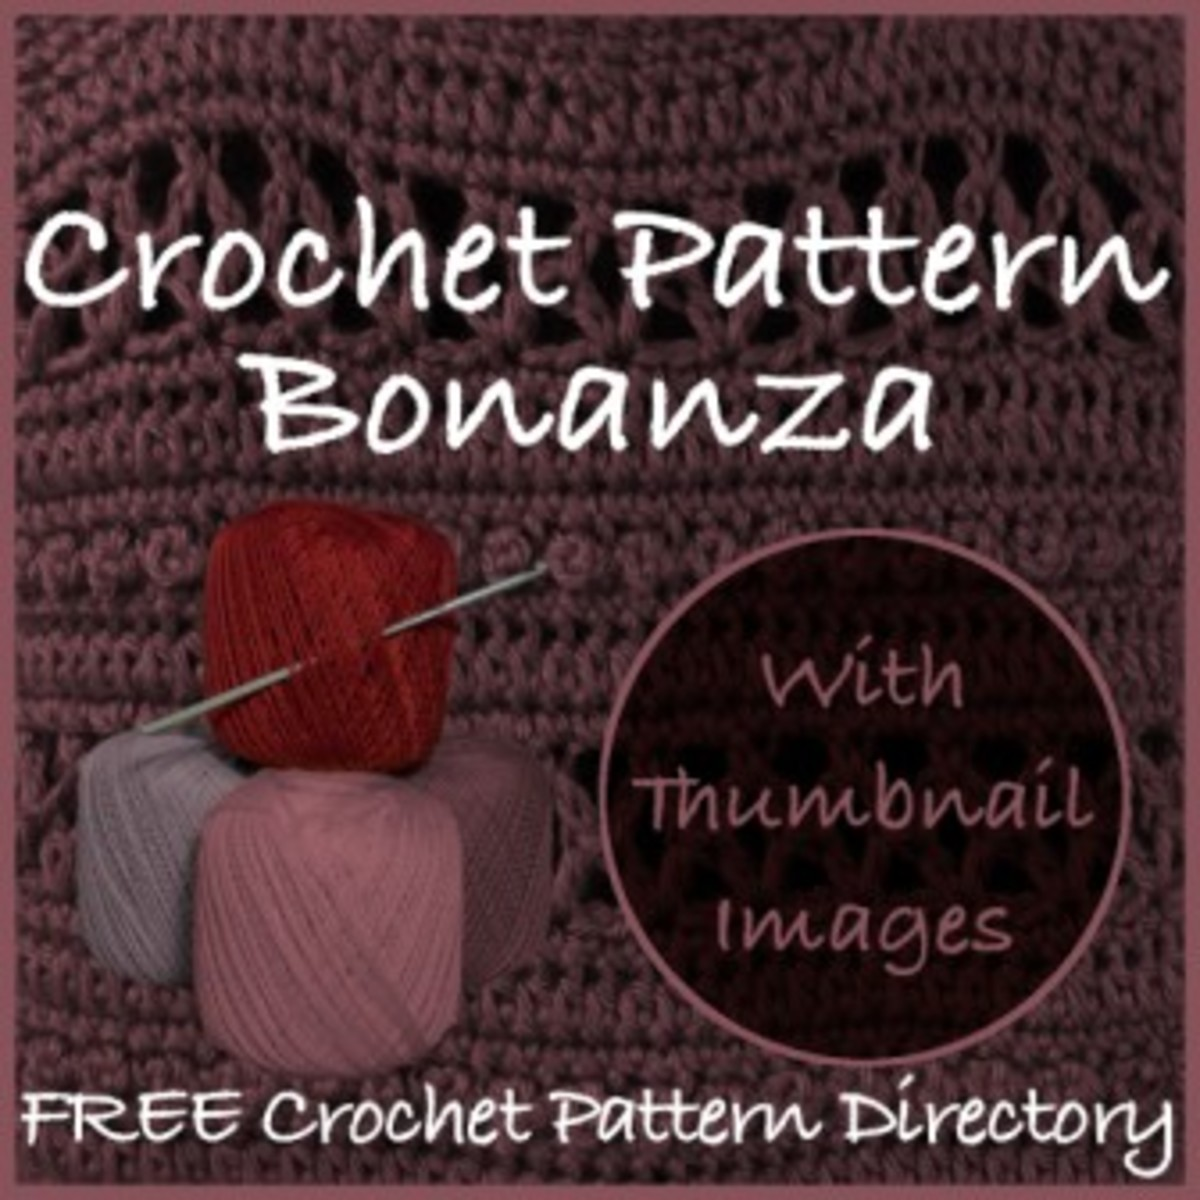 Free Crochet Pattern Directory with Thumbnails